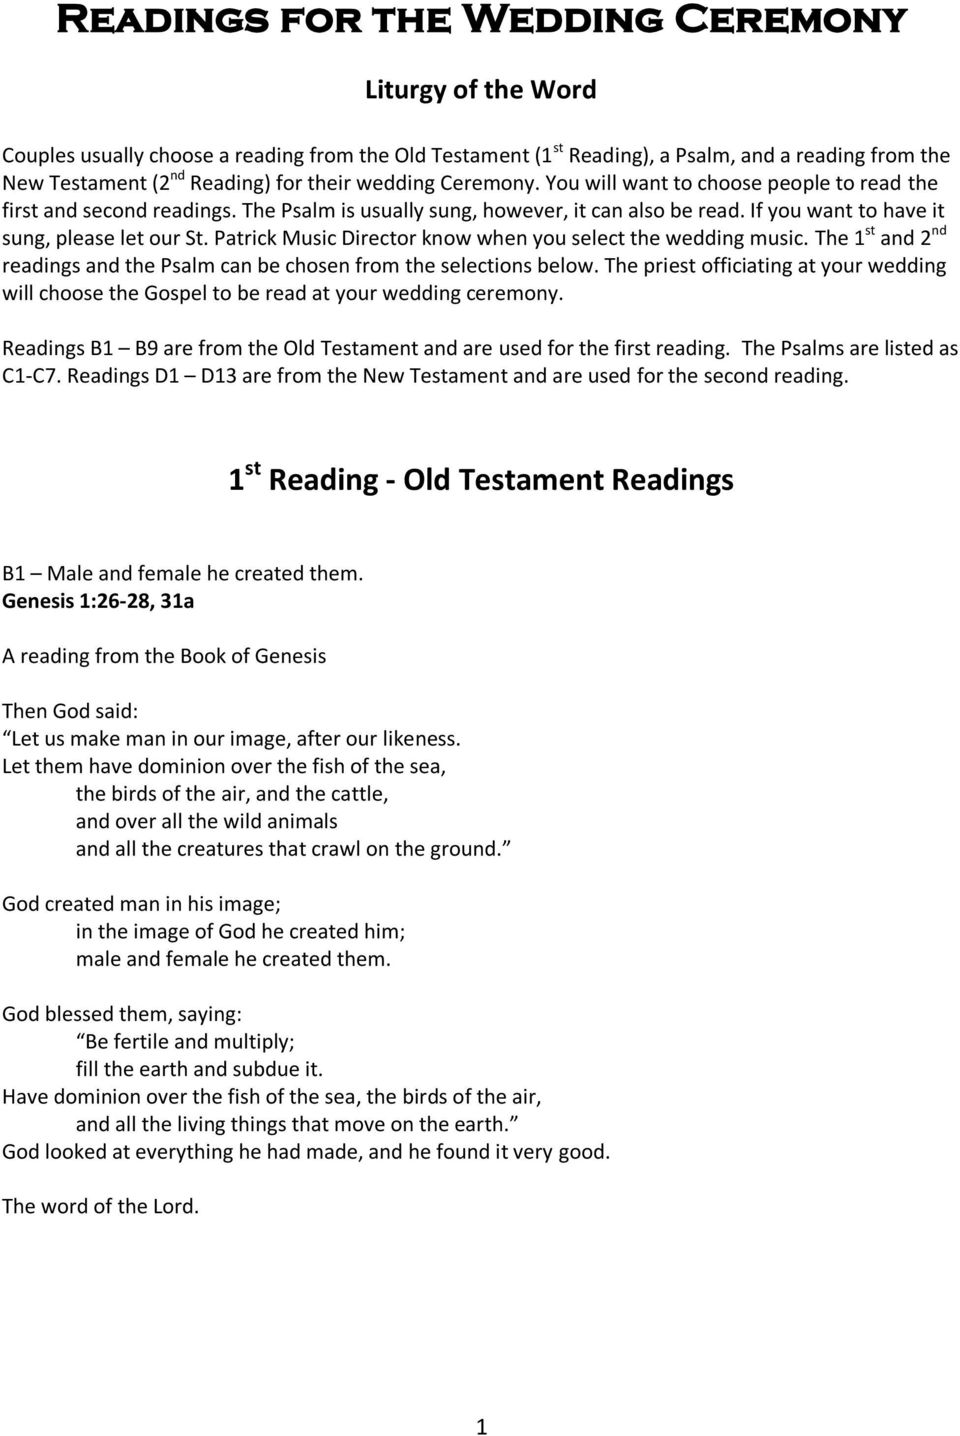 Readings For The Wedding Ceremony Pdf